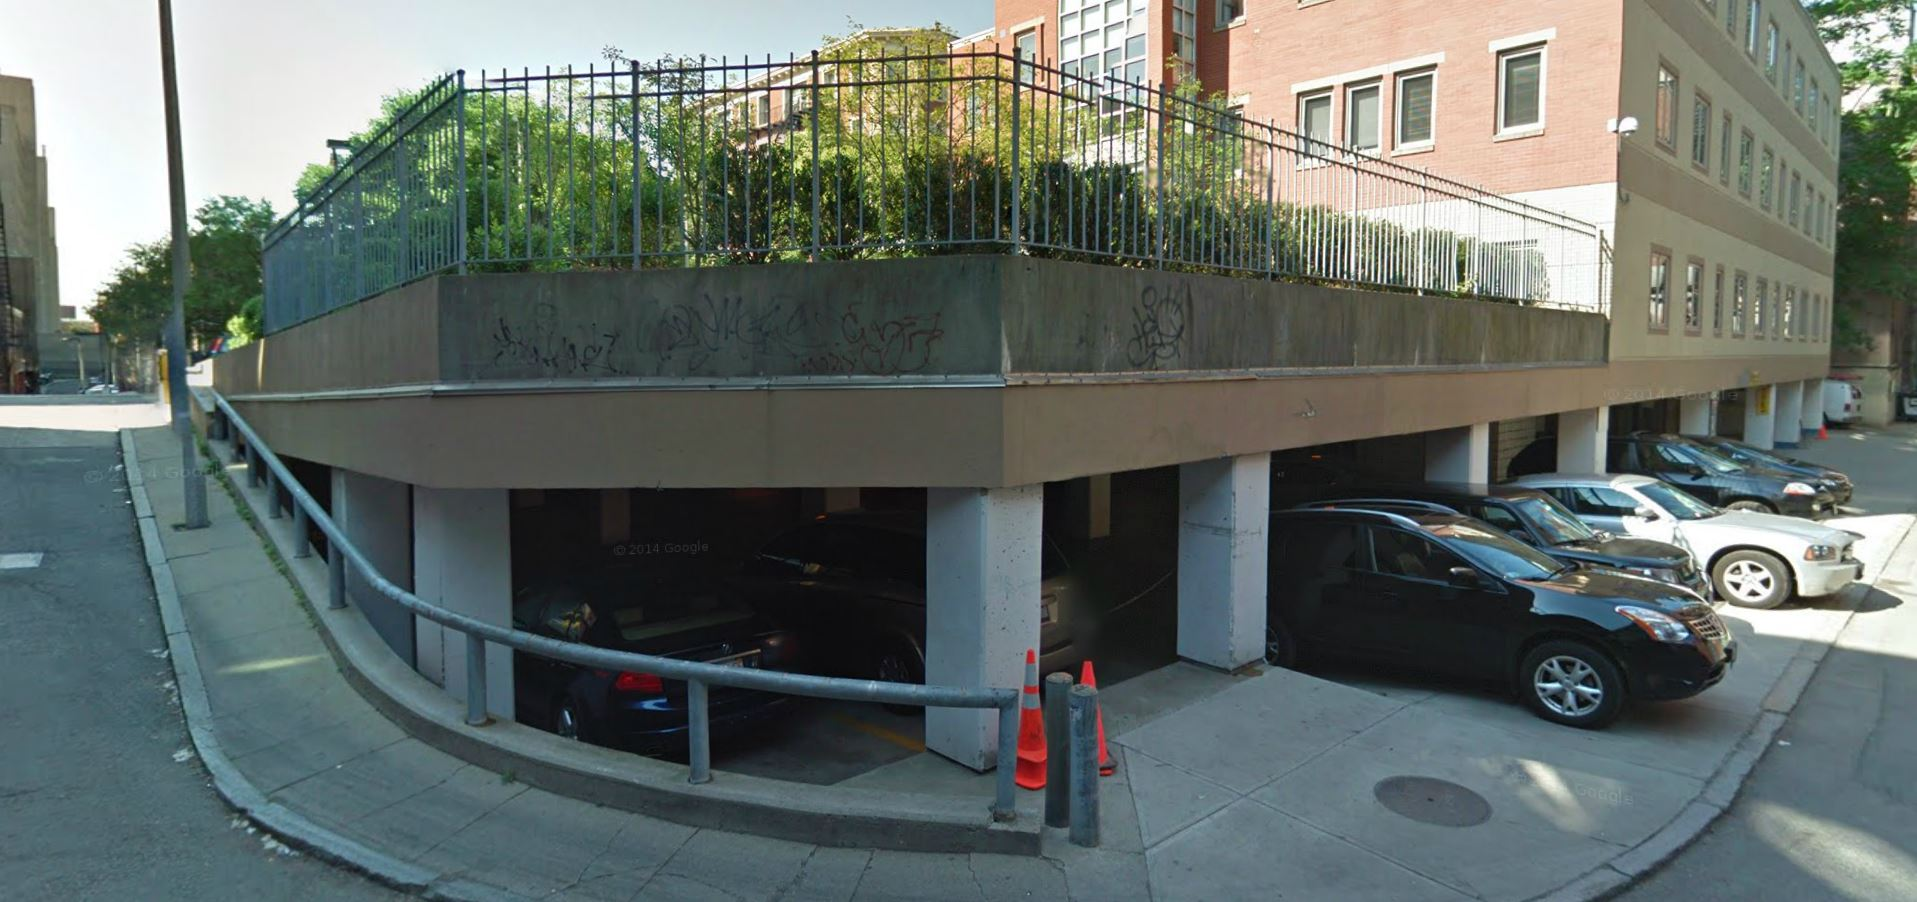 Spaces Newbury Street Parking - Find Parking near Spaces